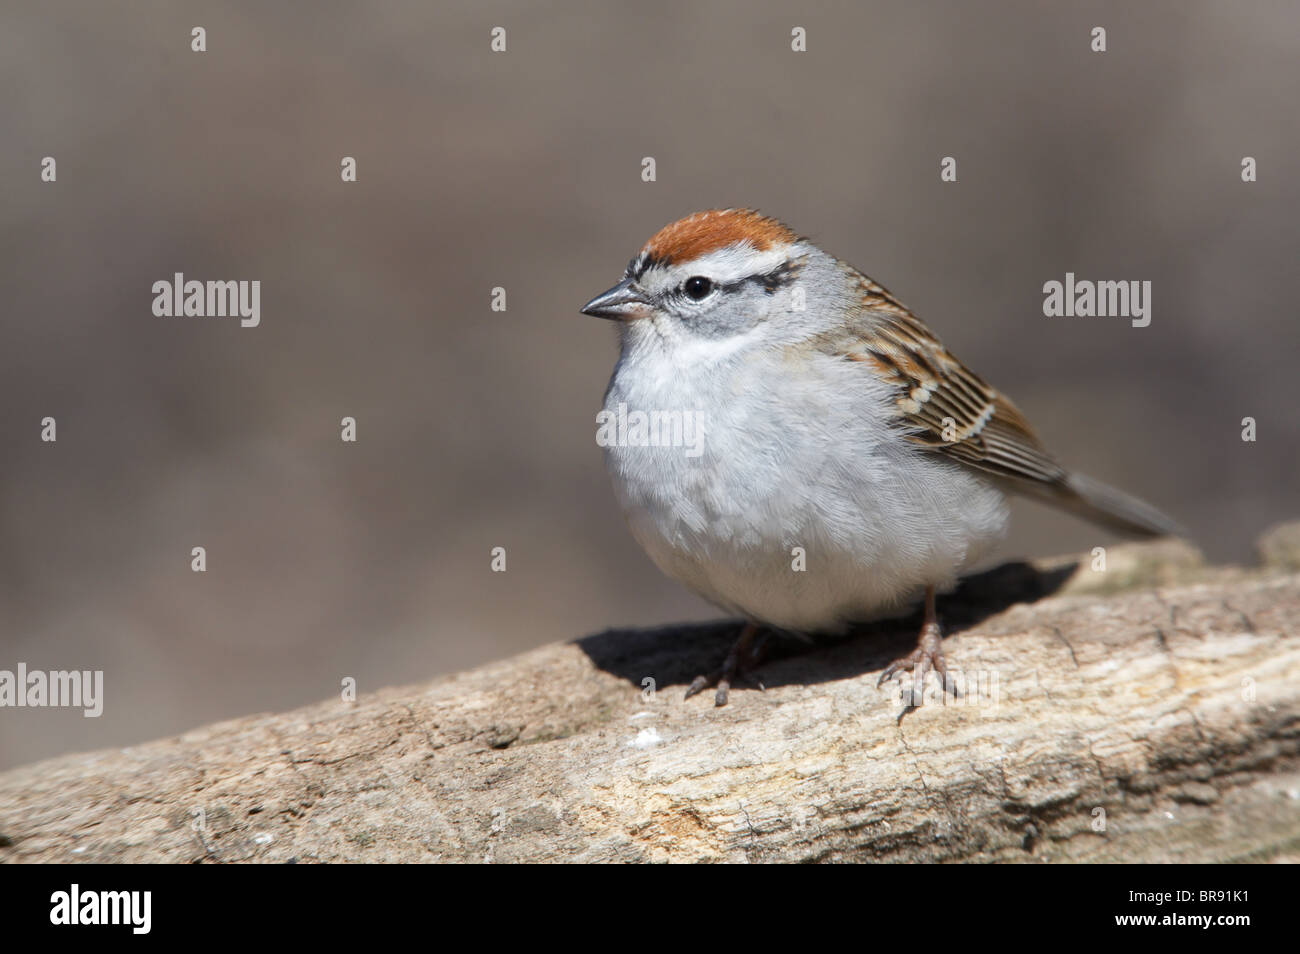 Adult Chipping Sparrow Perched on a Log - Stock Image